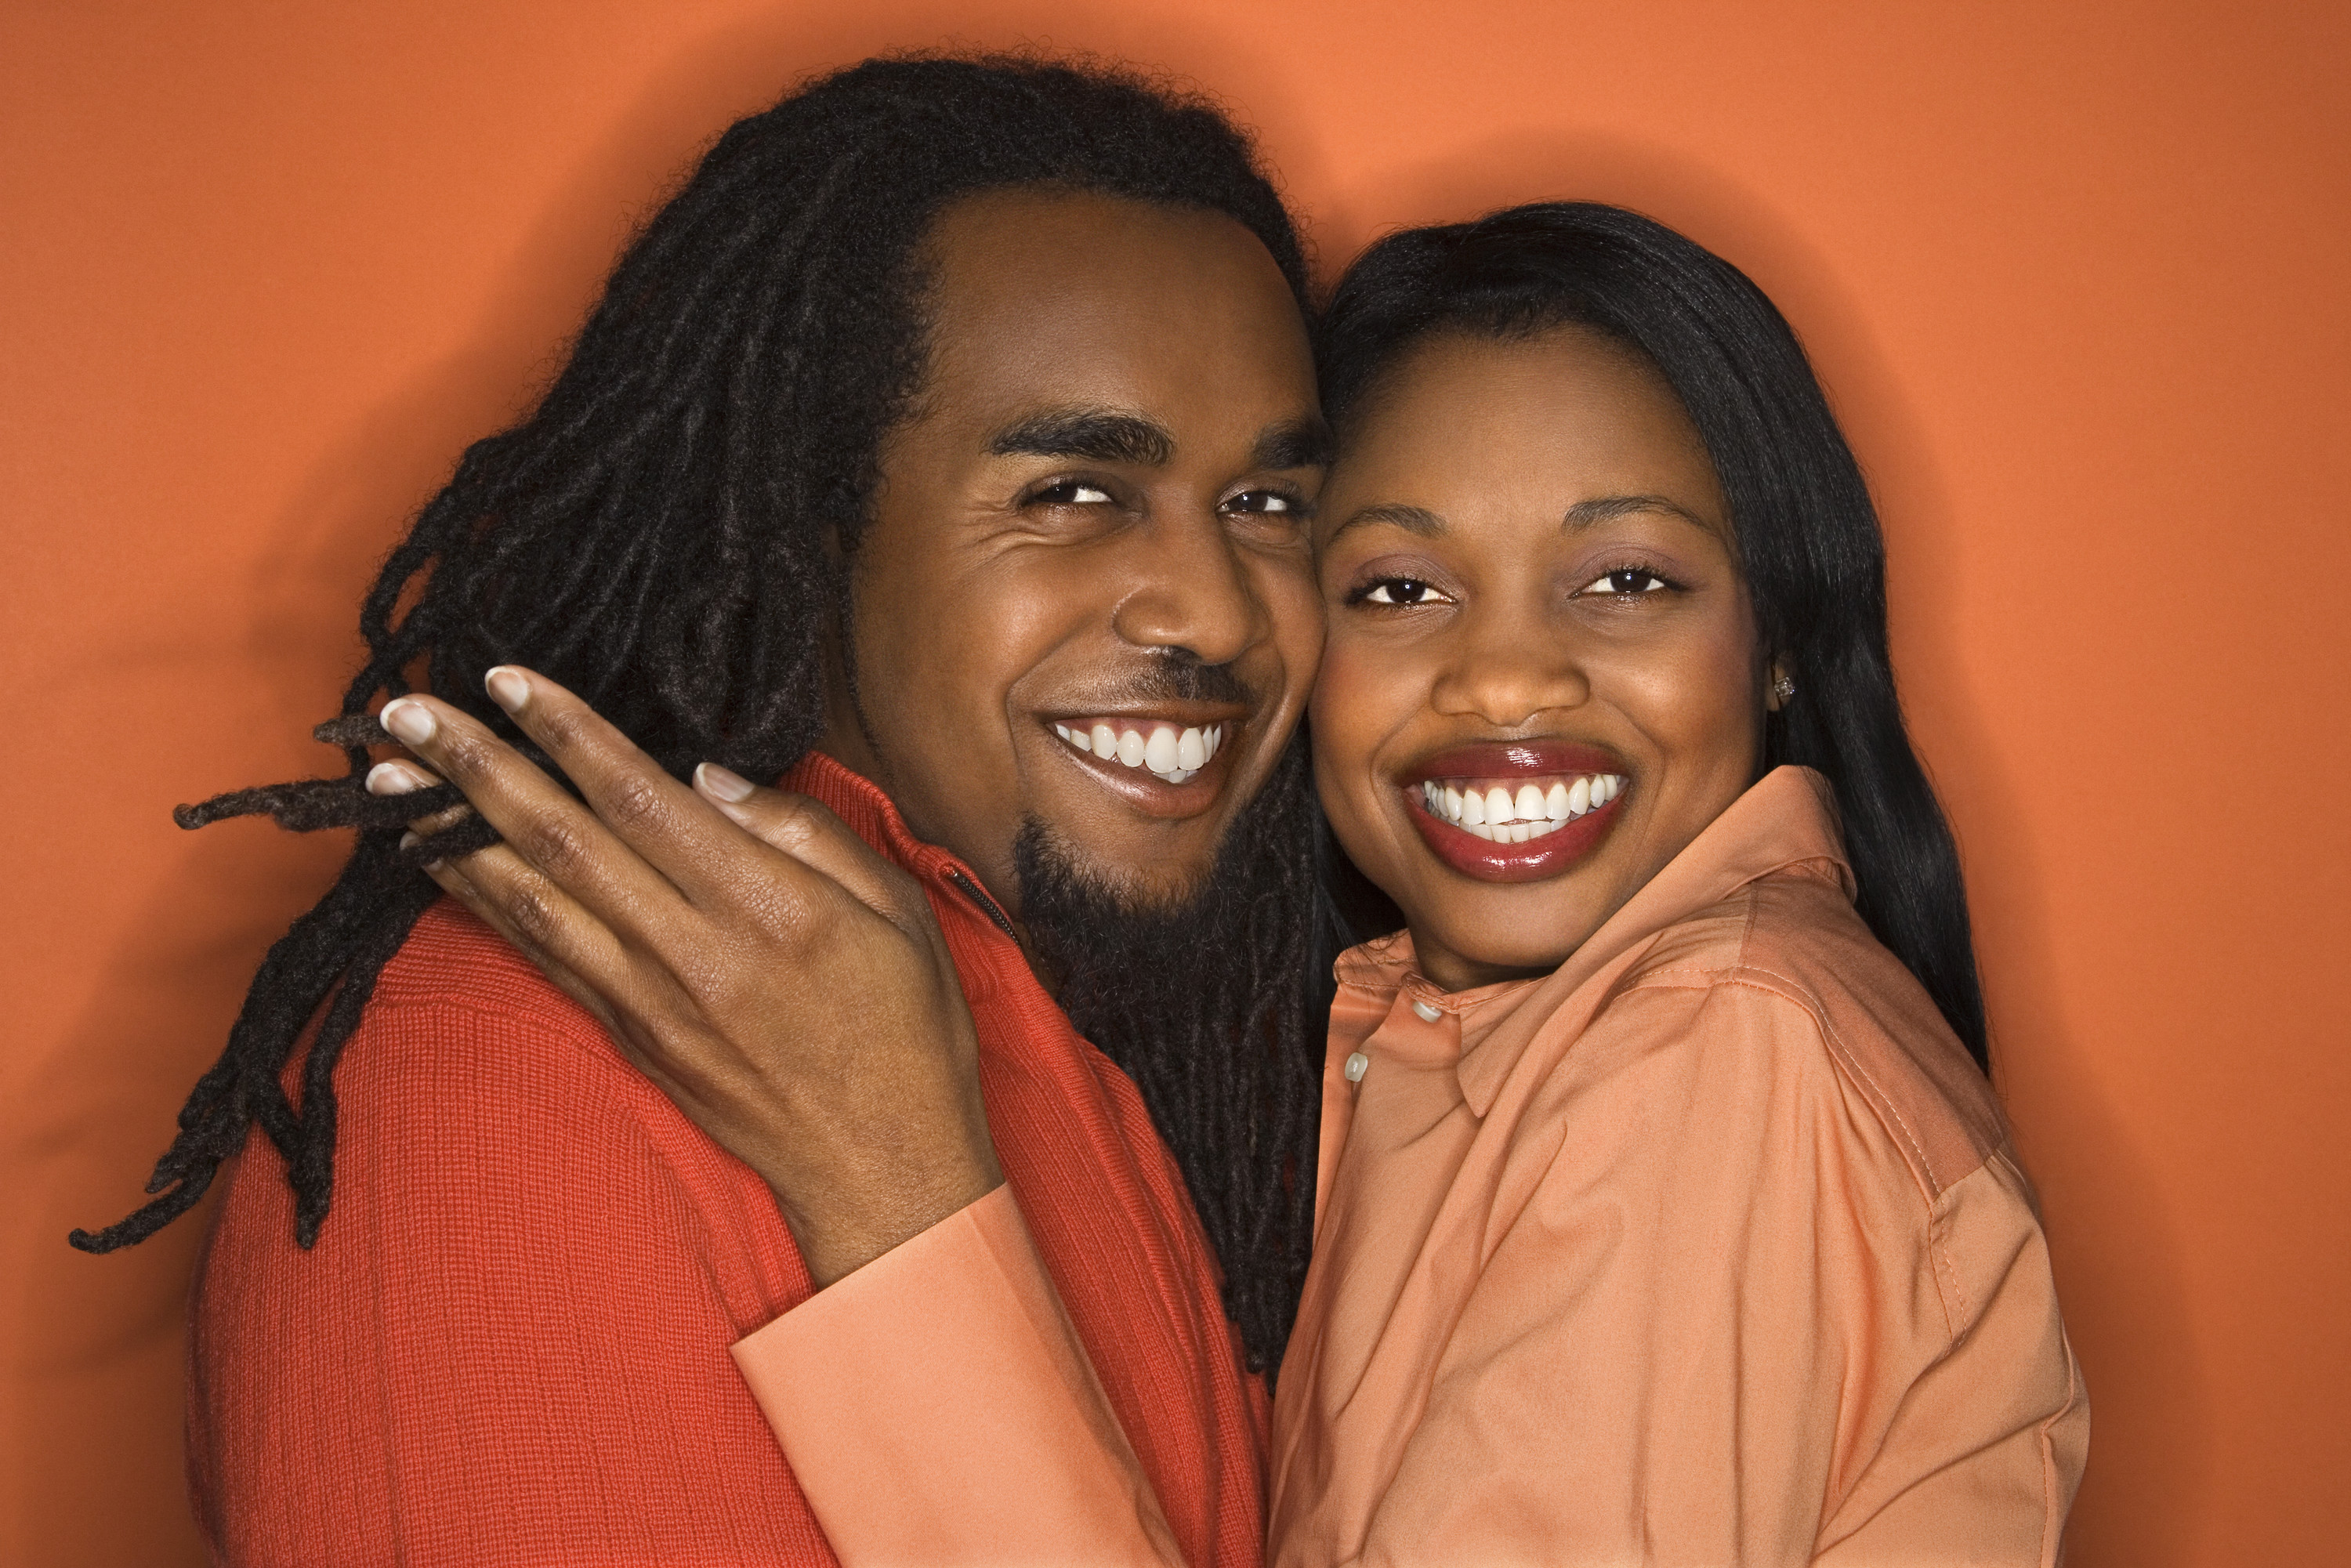 crayne black dating site Maybe wwwmixedmatchingcom-- is suitable for youthis is a serious black and white dating services and personals site dedicated to those seeking real love share your life and love with friends online.